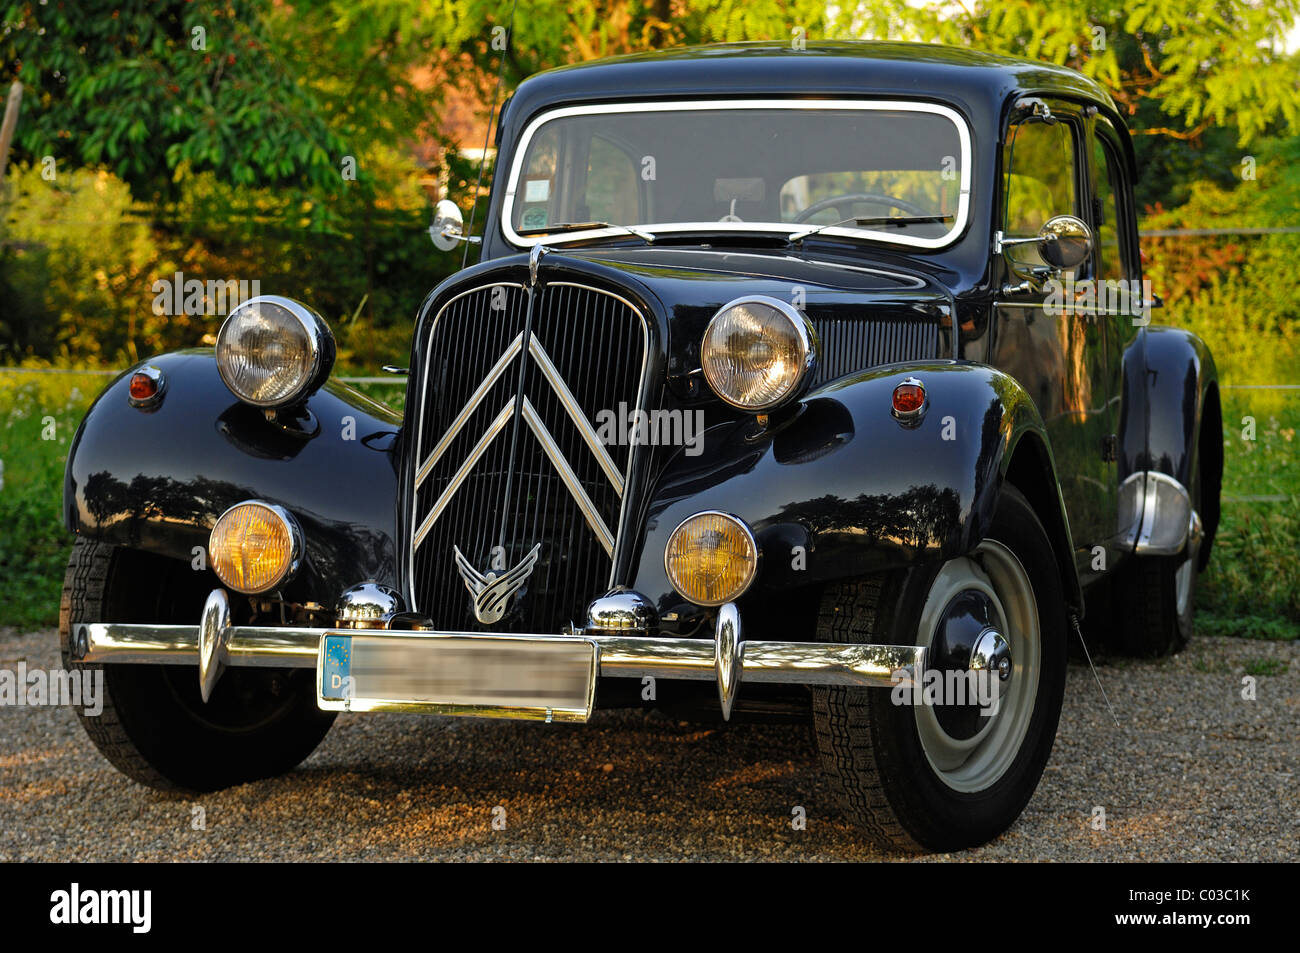 classic car  citroen 11 cv commercial  built 1955